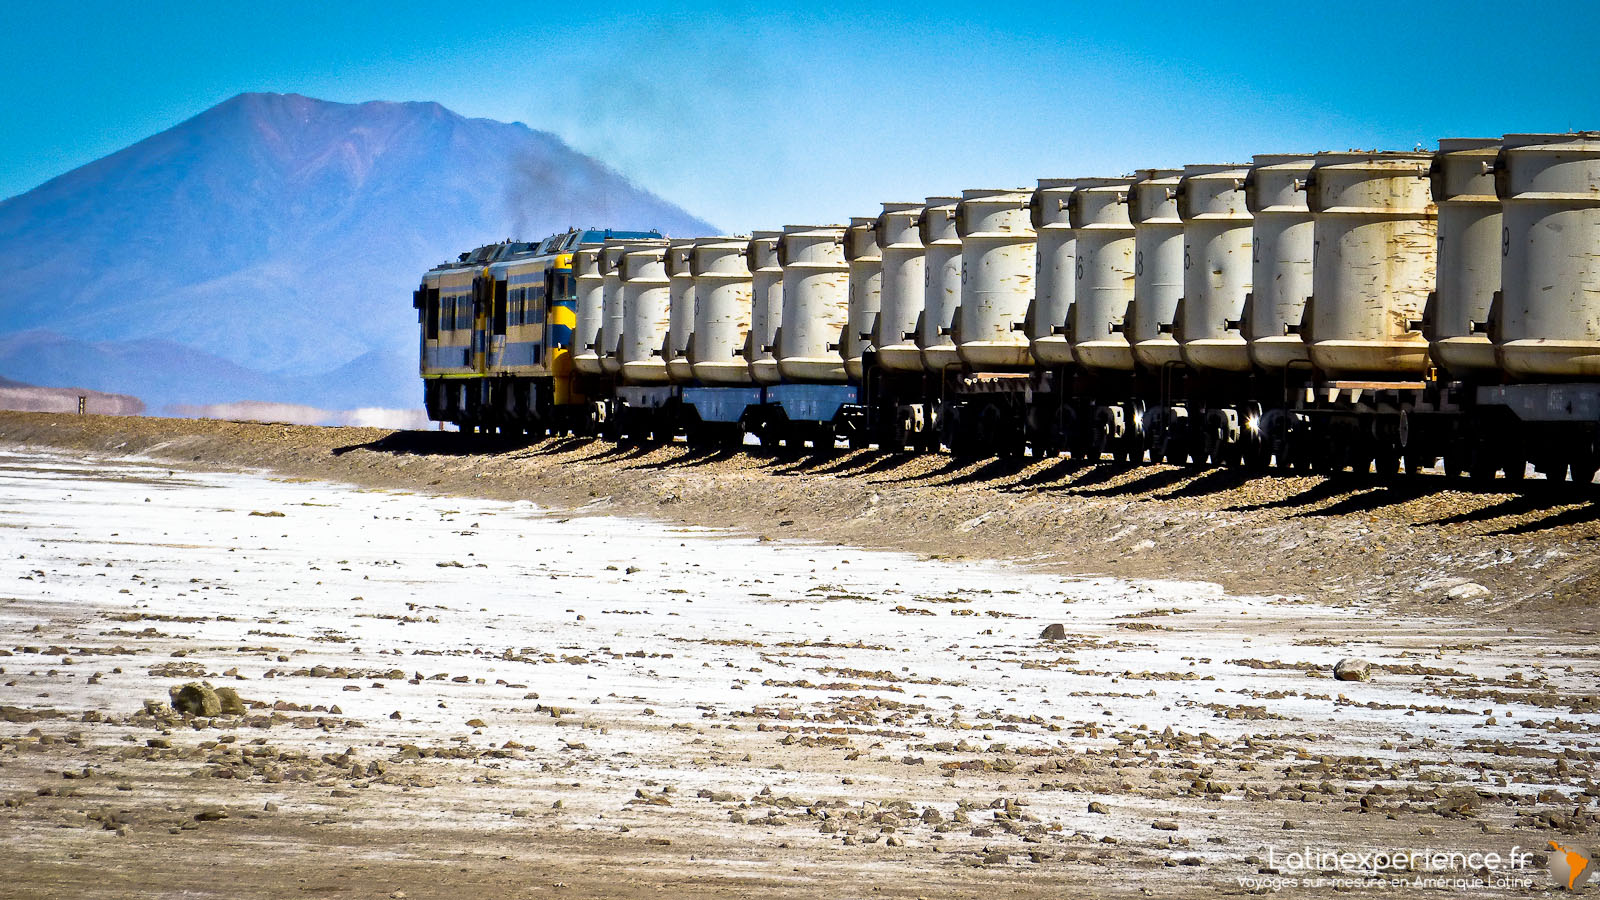 latinexperience voyages - Bolivie - Train